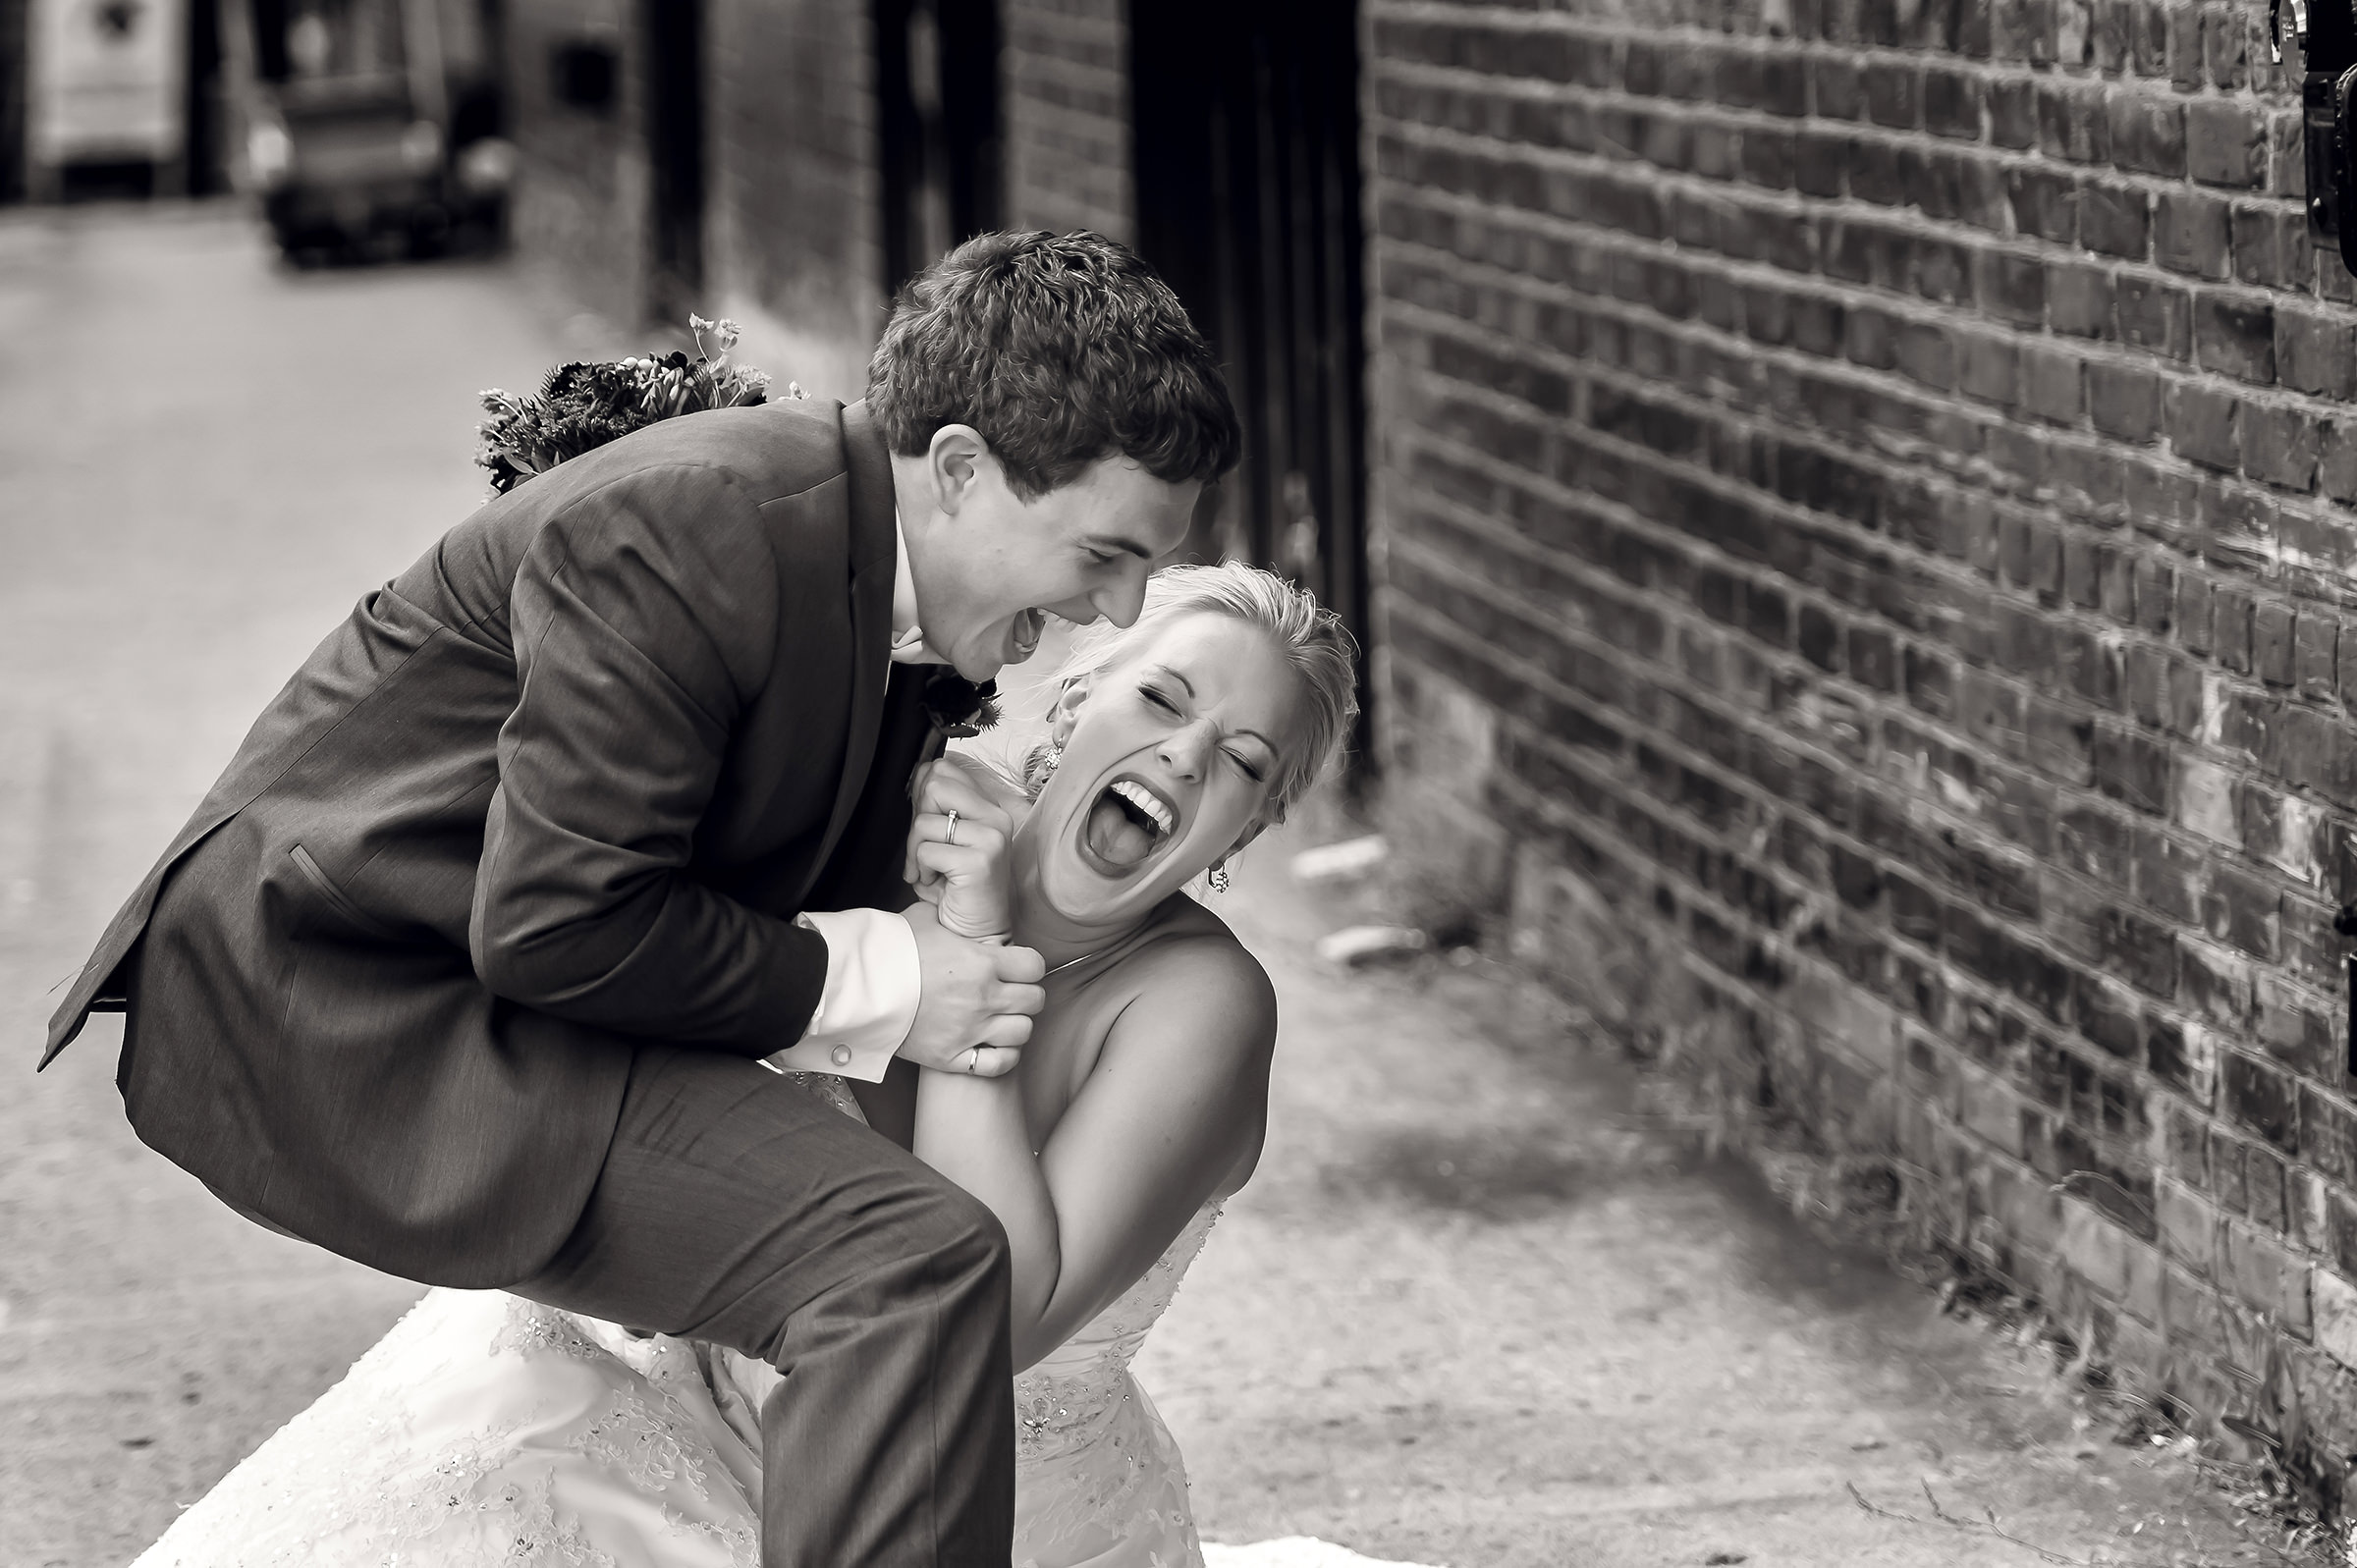 Bride and groom play at wrestling - photo by David & Sherry Photography